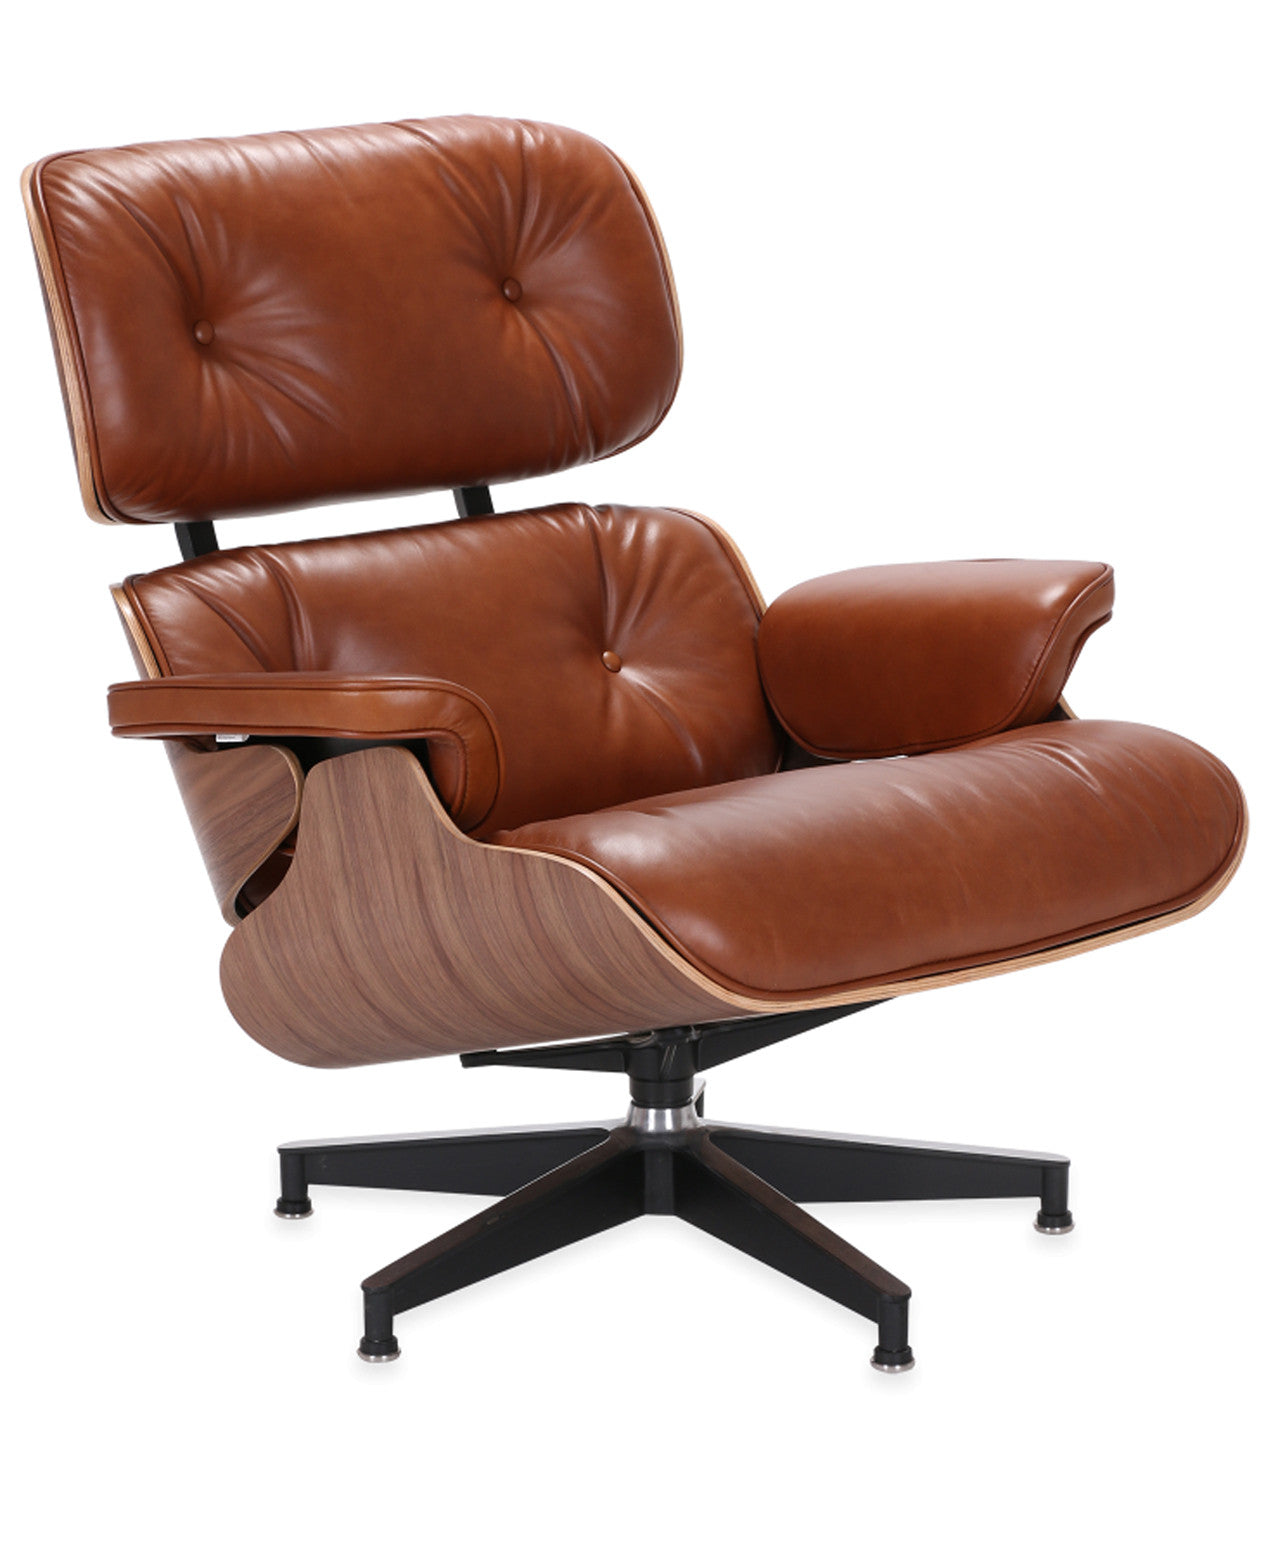 Lounge Chair Leather - Charles eames lounge chair